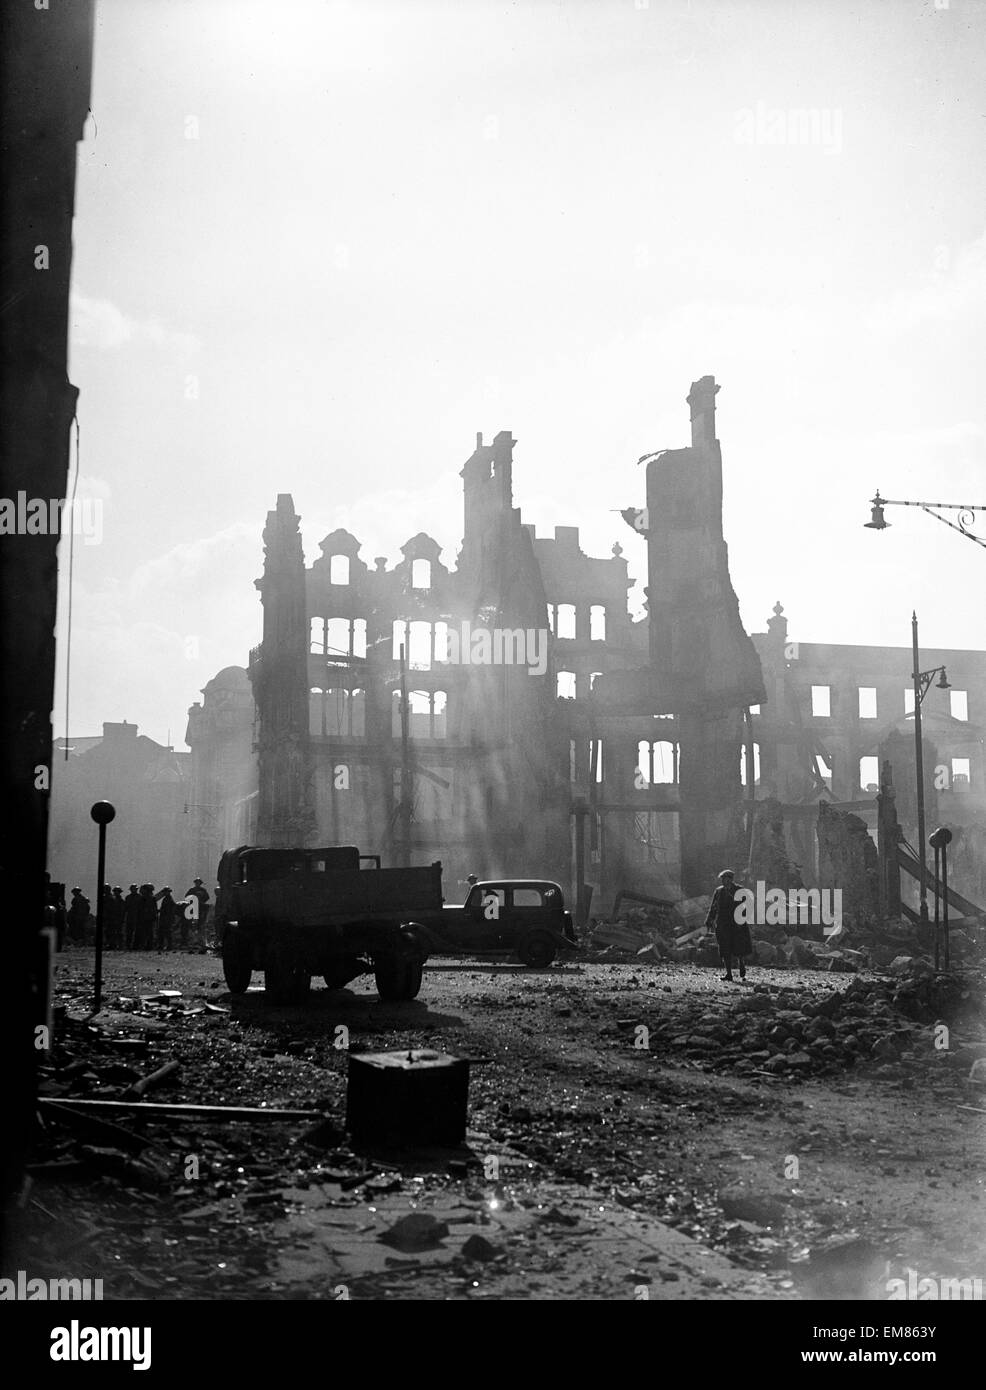 Swansea as dawn breaks after three night blitz attack by the German luftwaffe in World War Two. February 1941. Stock Photo